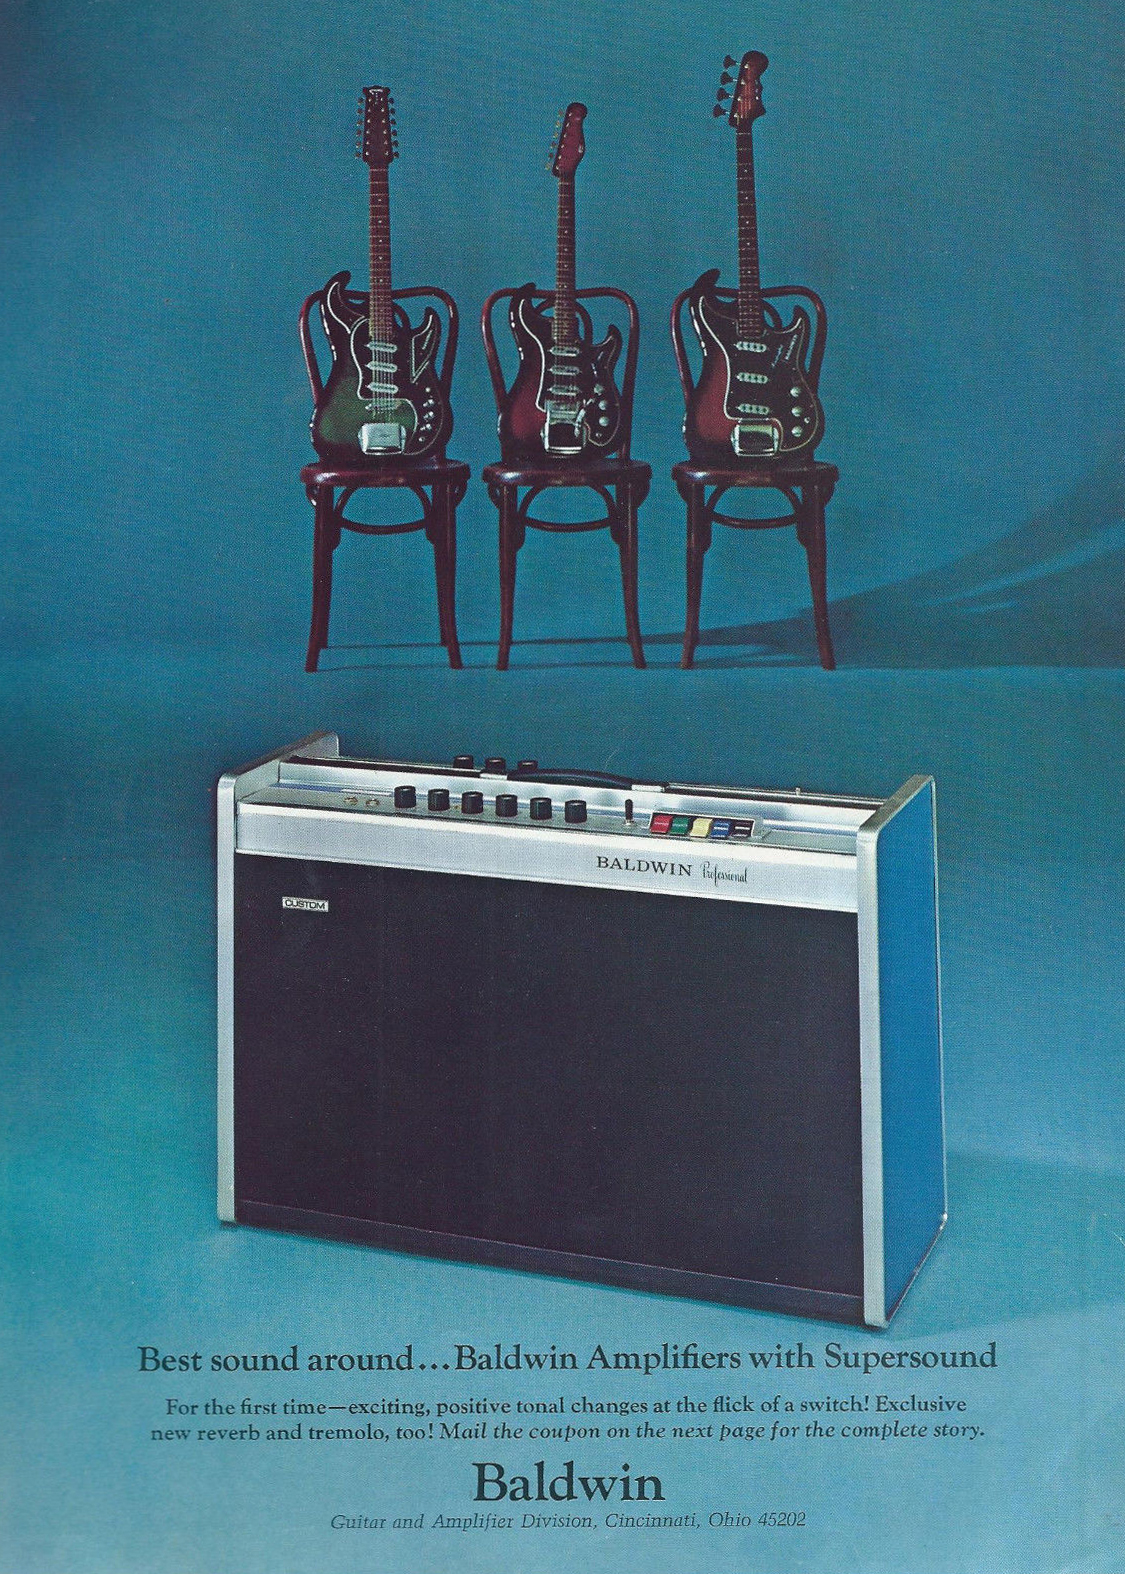 8f2a2087c9511a 1966 Best sound around ... Baldwin Amplifiers with Supersound ...